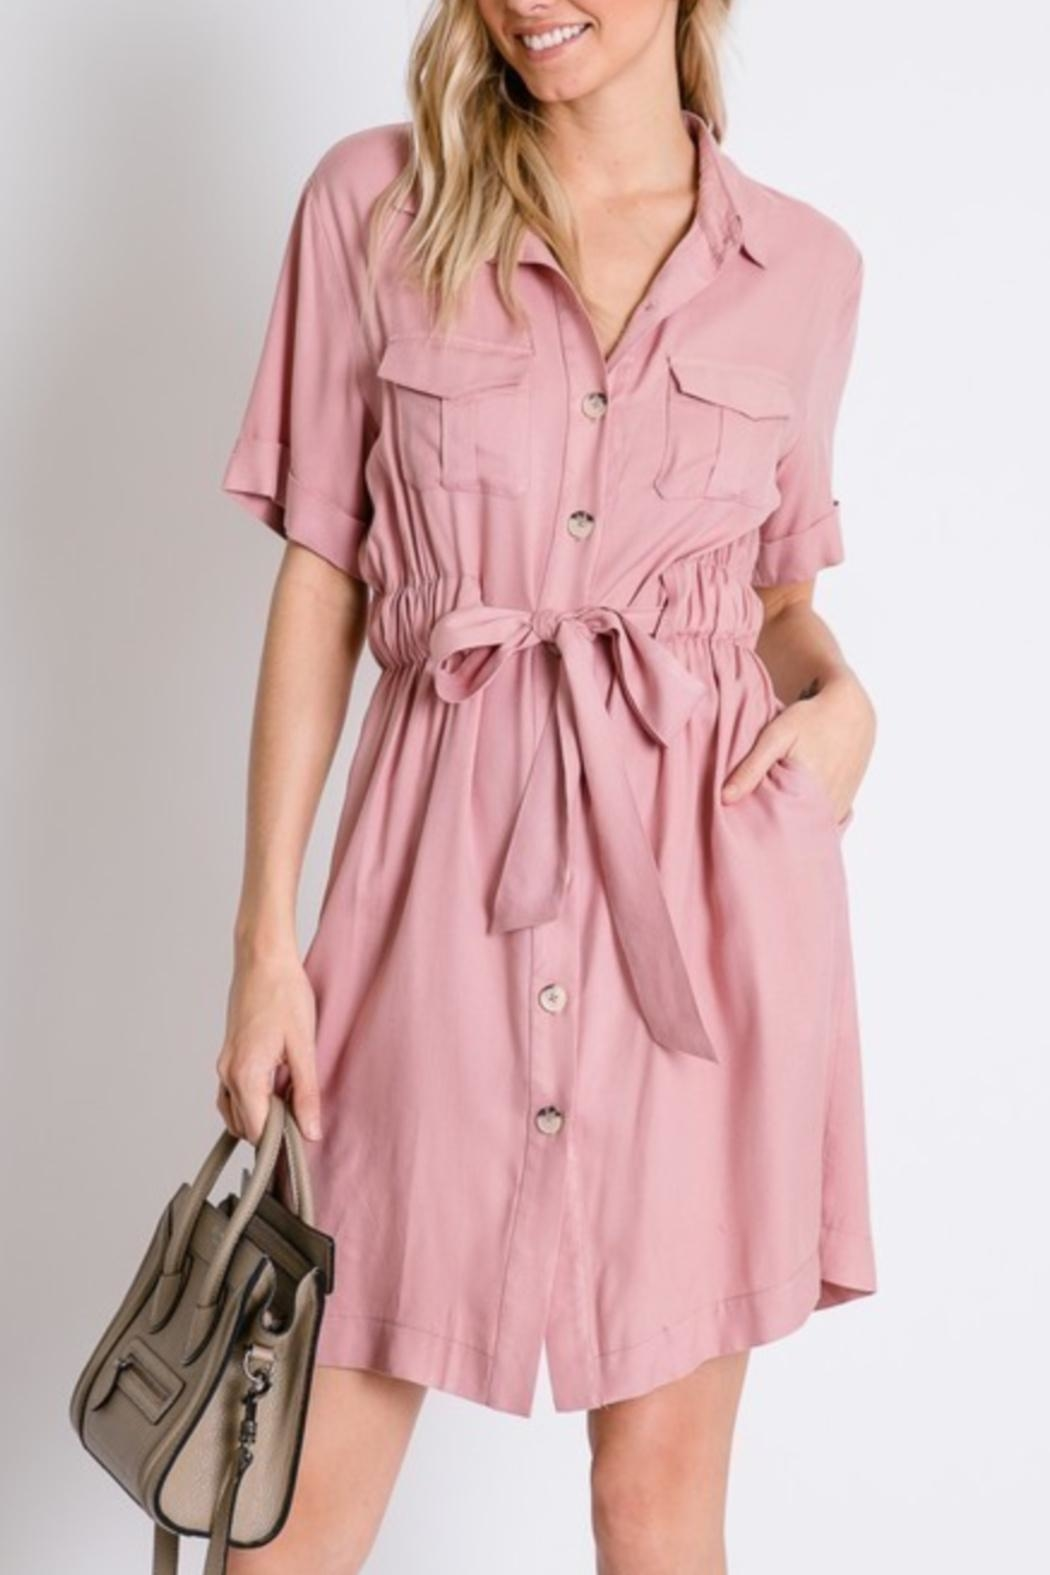 Davi & Dani Button Down Shirt-Dress - Main Image